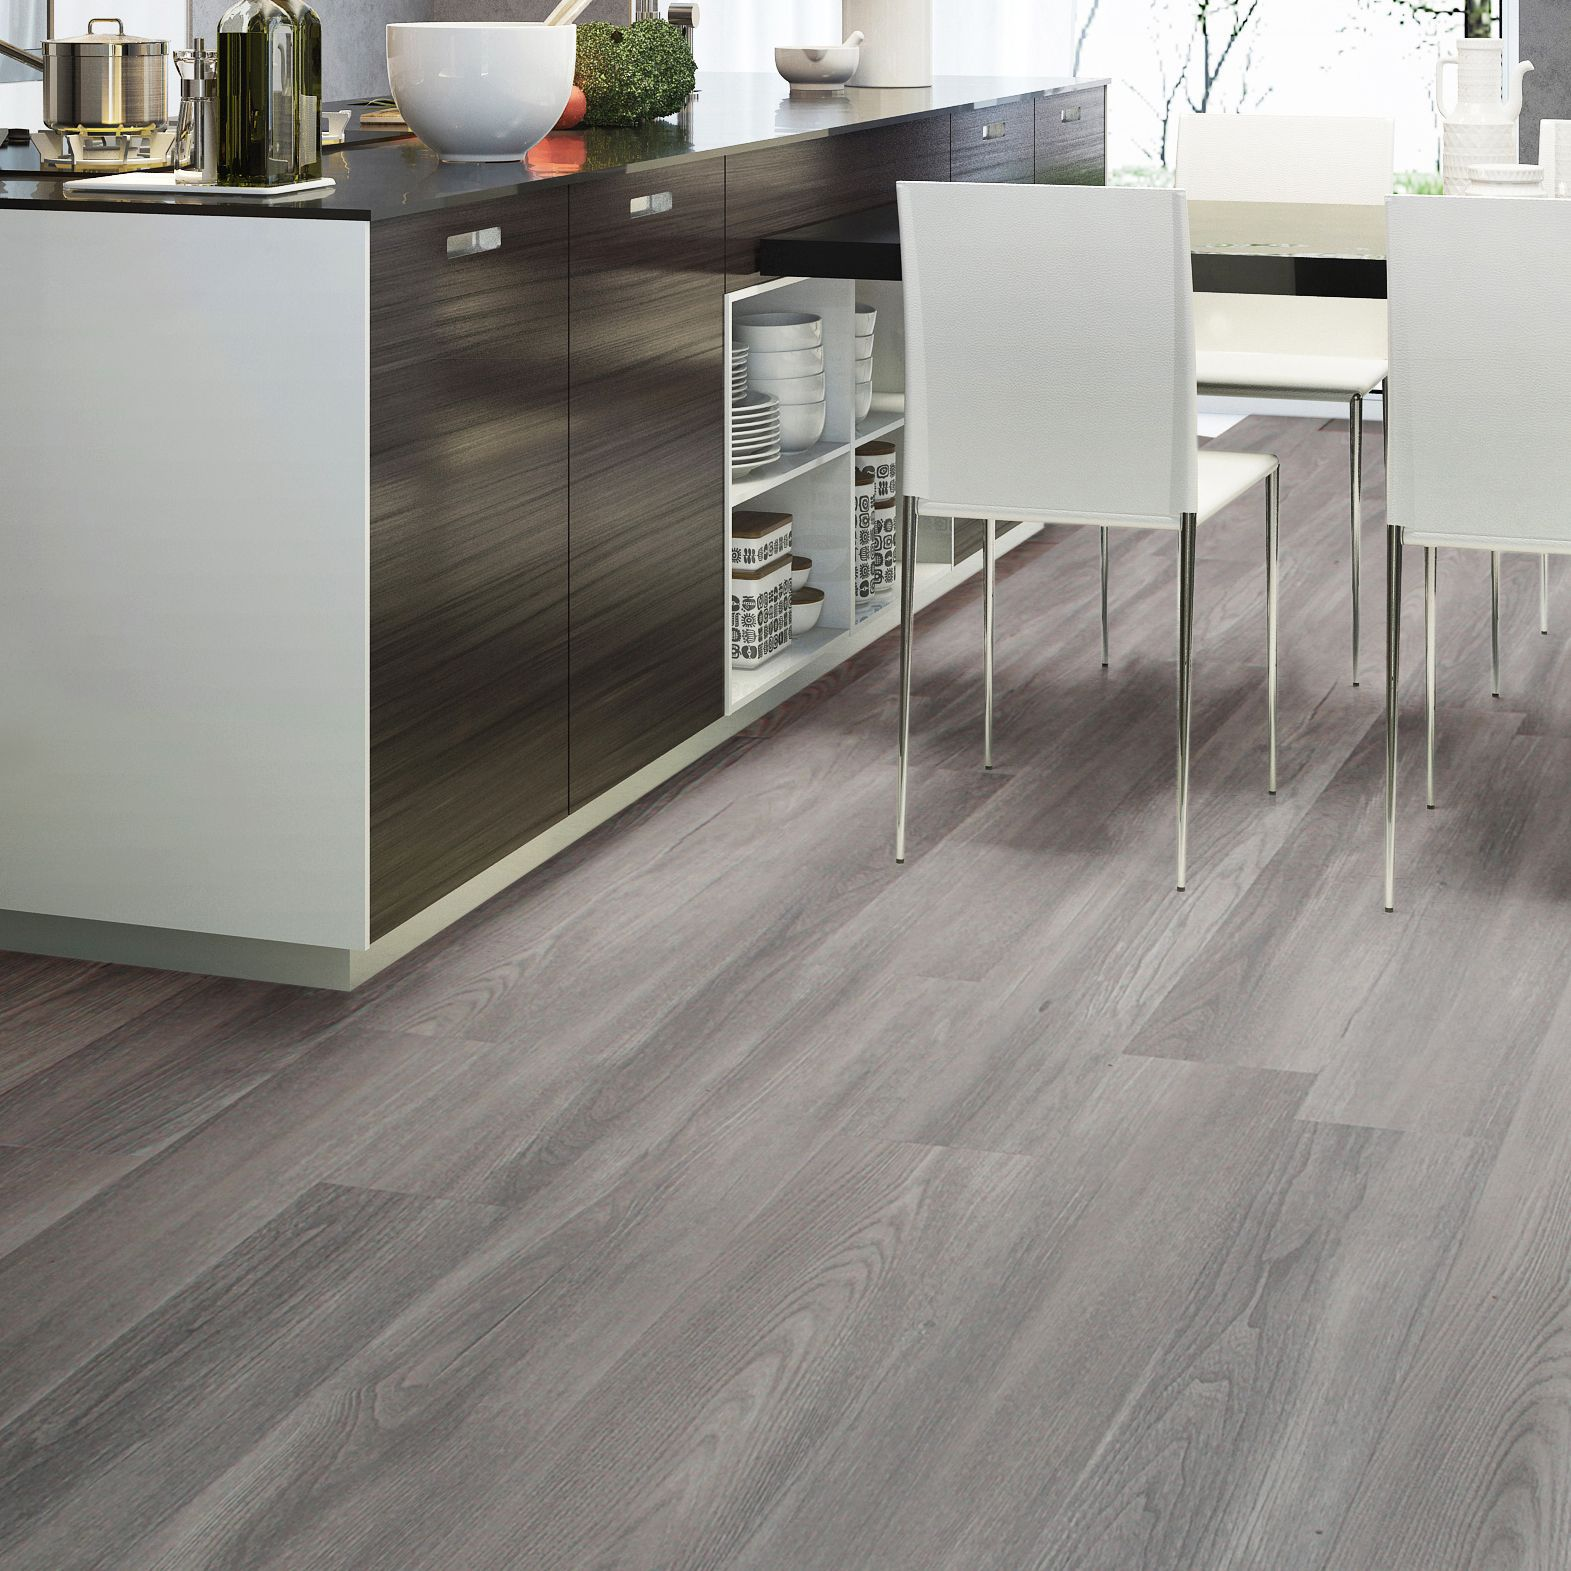 Grey Natural Oak Effect Waterproof Luxury Vinyl Click Flooring 2 20m² Pack